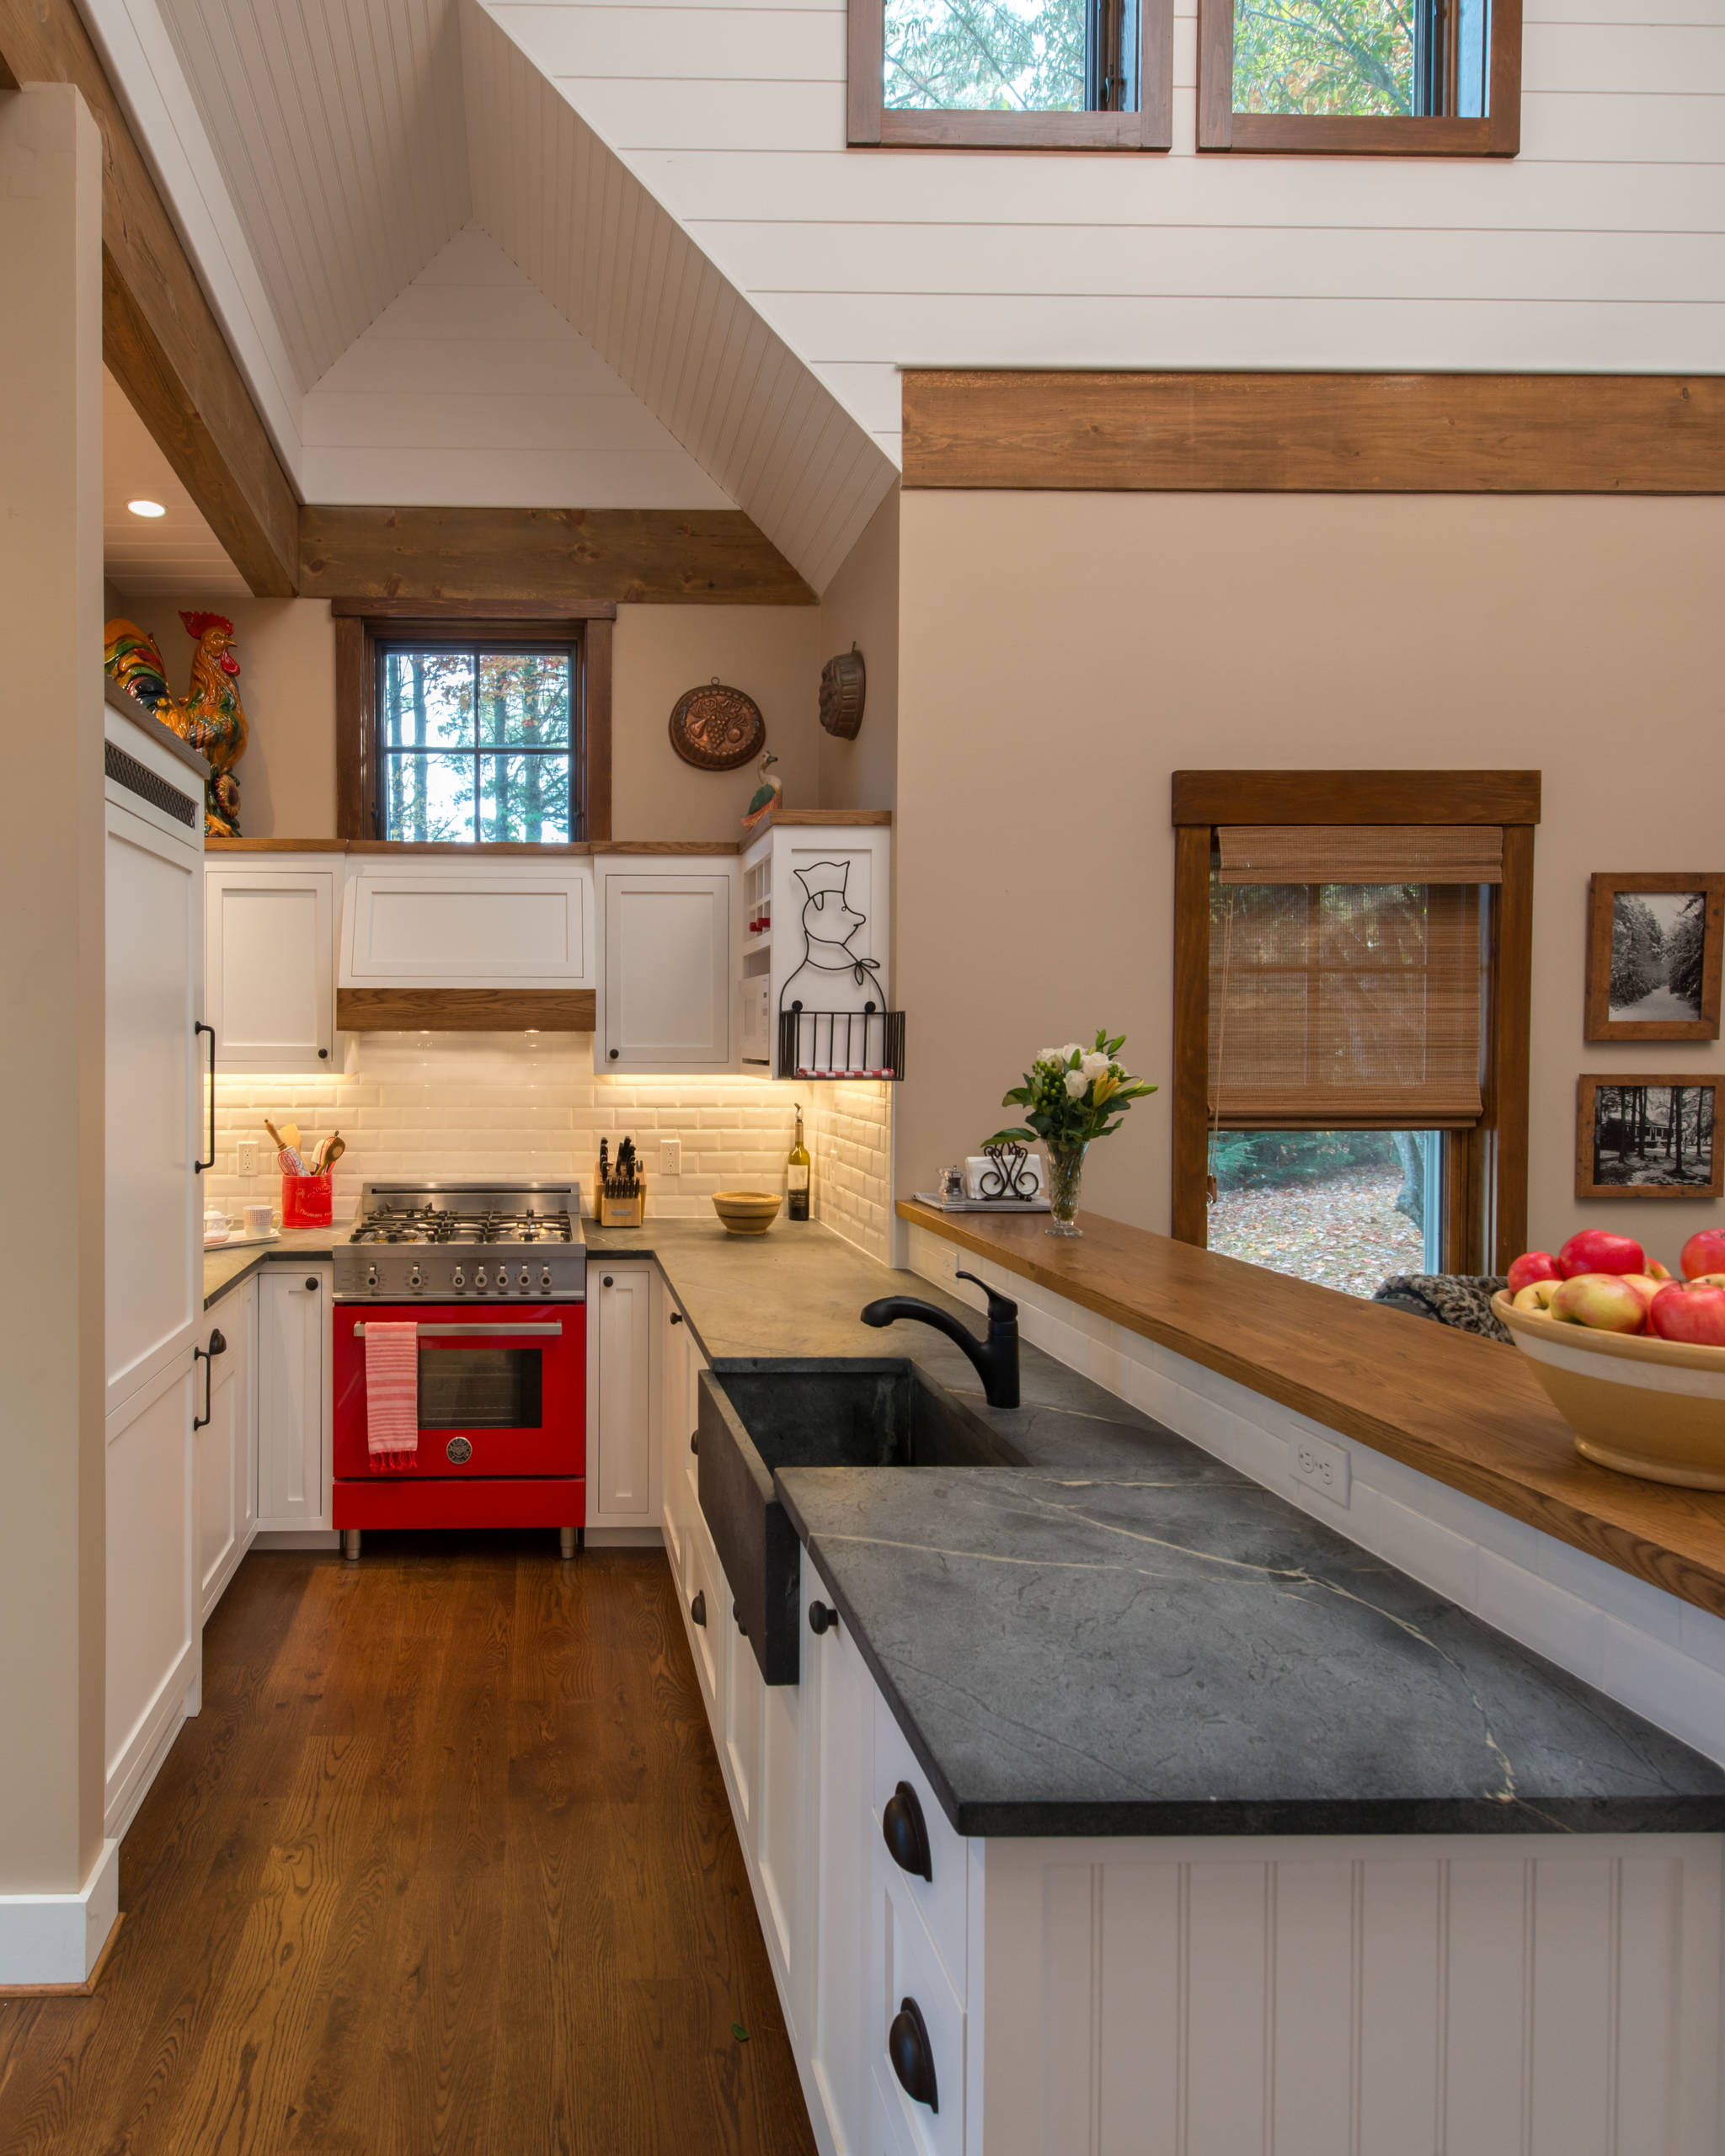 75 Beautiful Small Open Concept Kitchen Pictures Ideas March 2021 Houzz